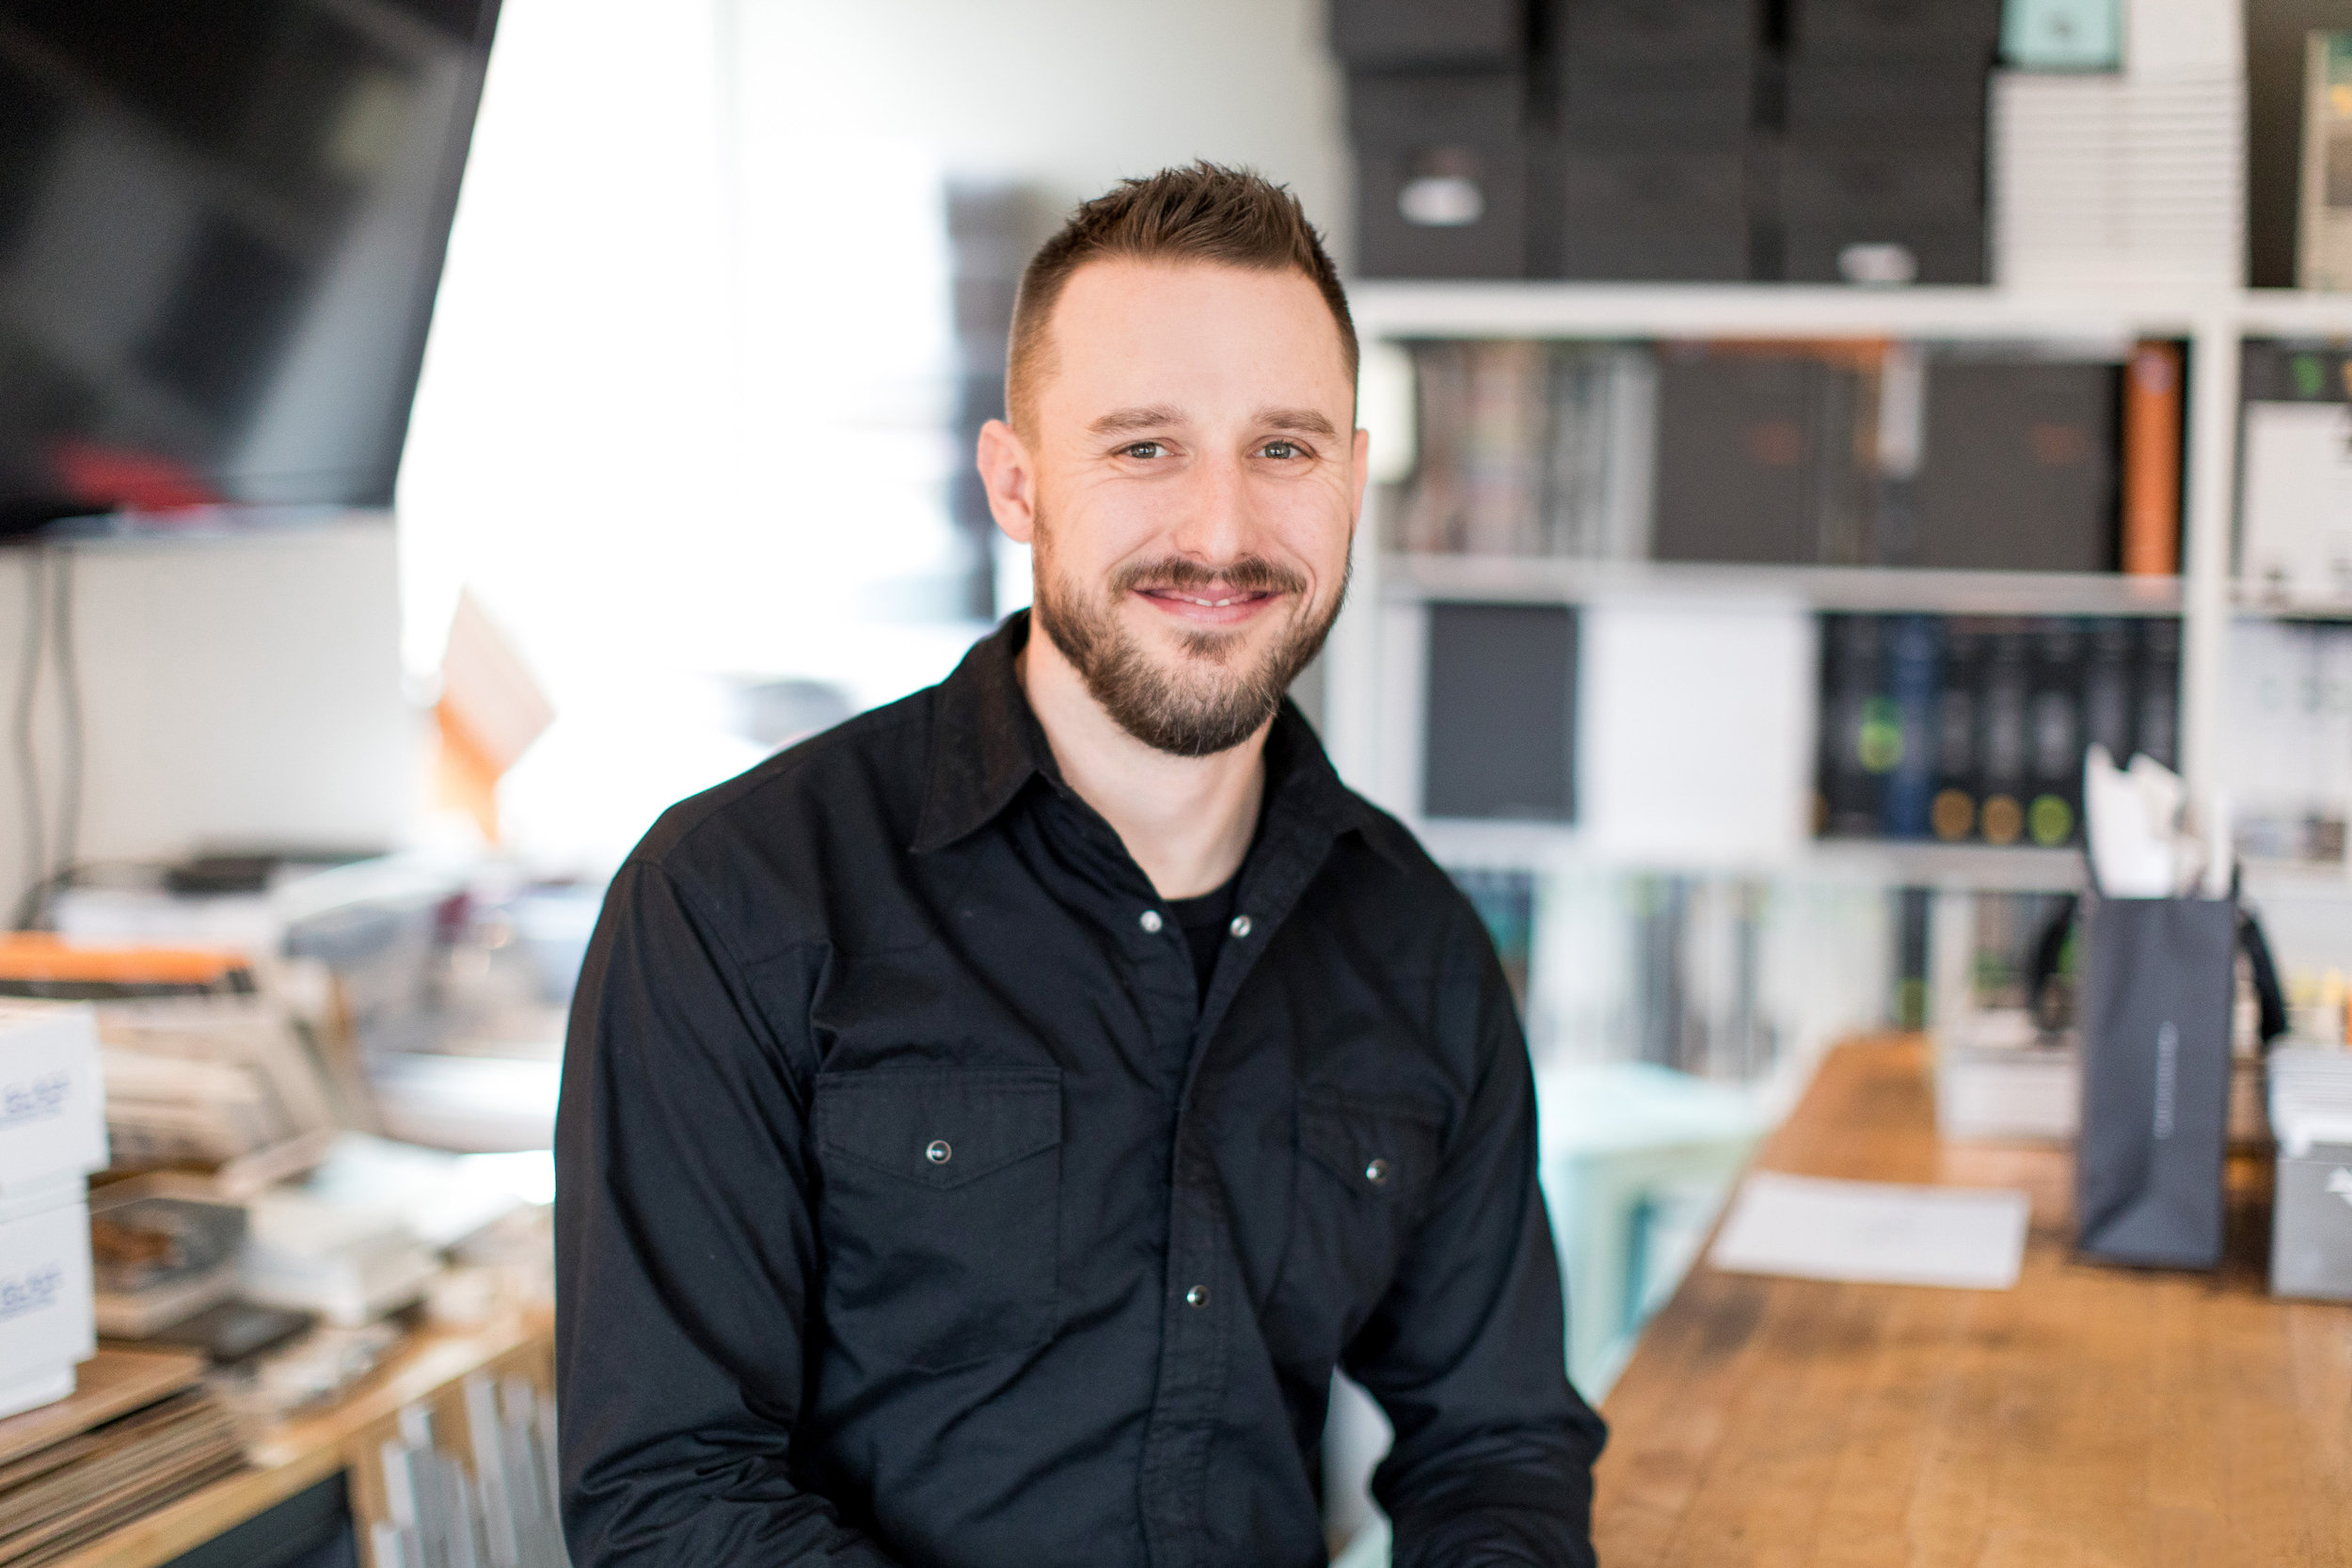 GABE McKEE / DESIGN PRINCIPAL - Bachelor of Architecture, Kansas State University